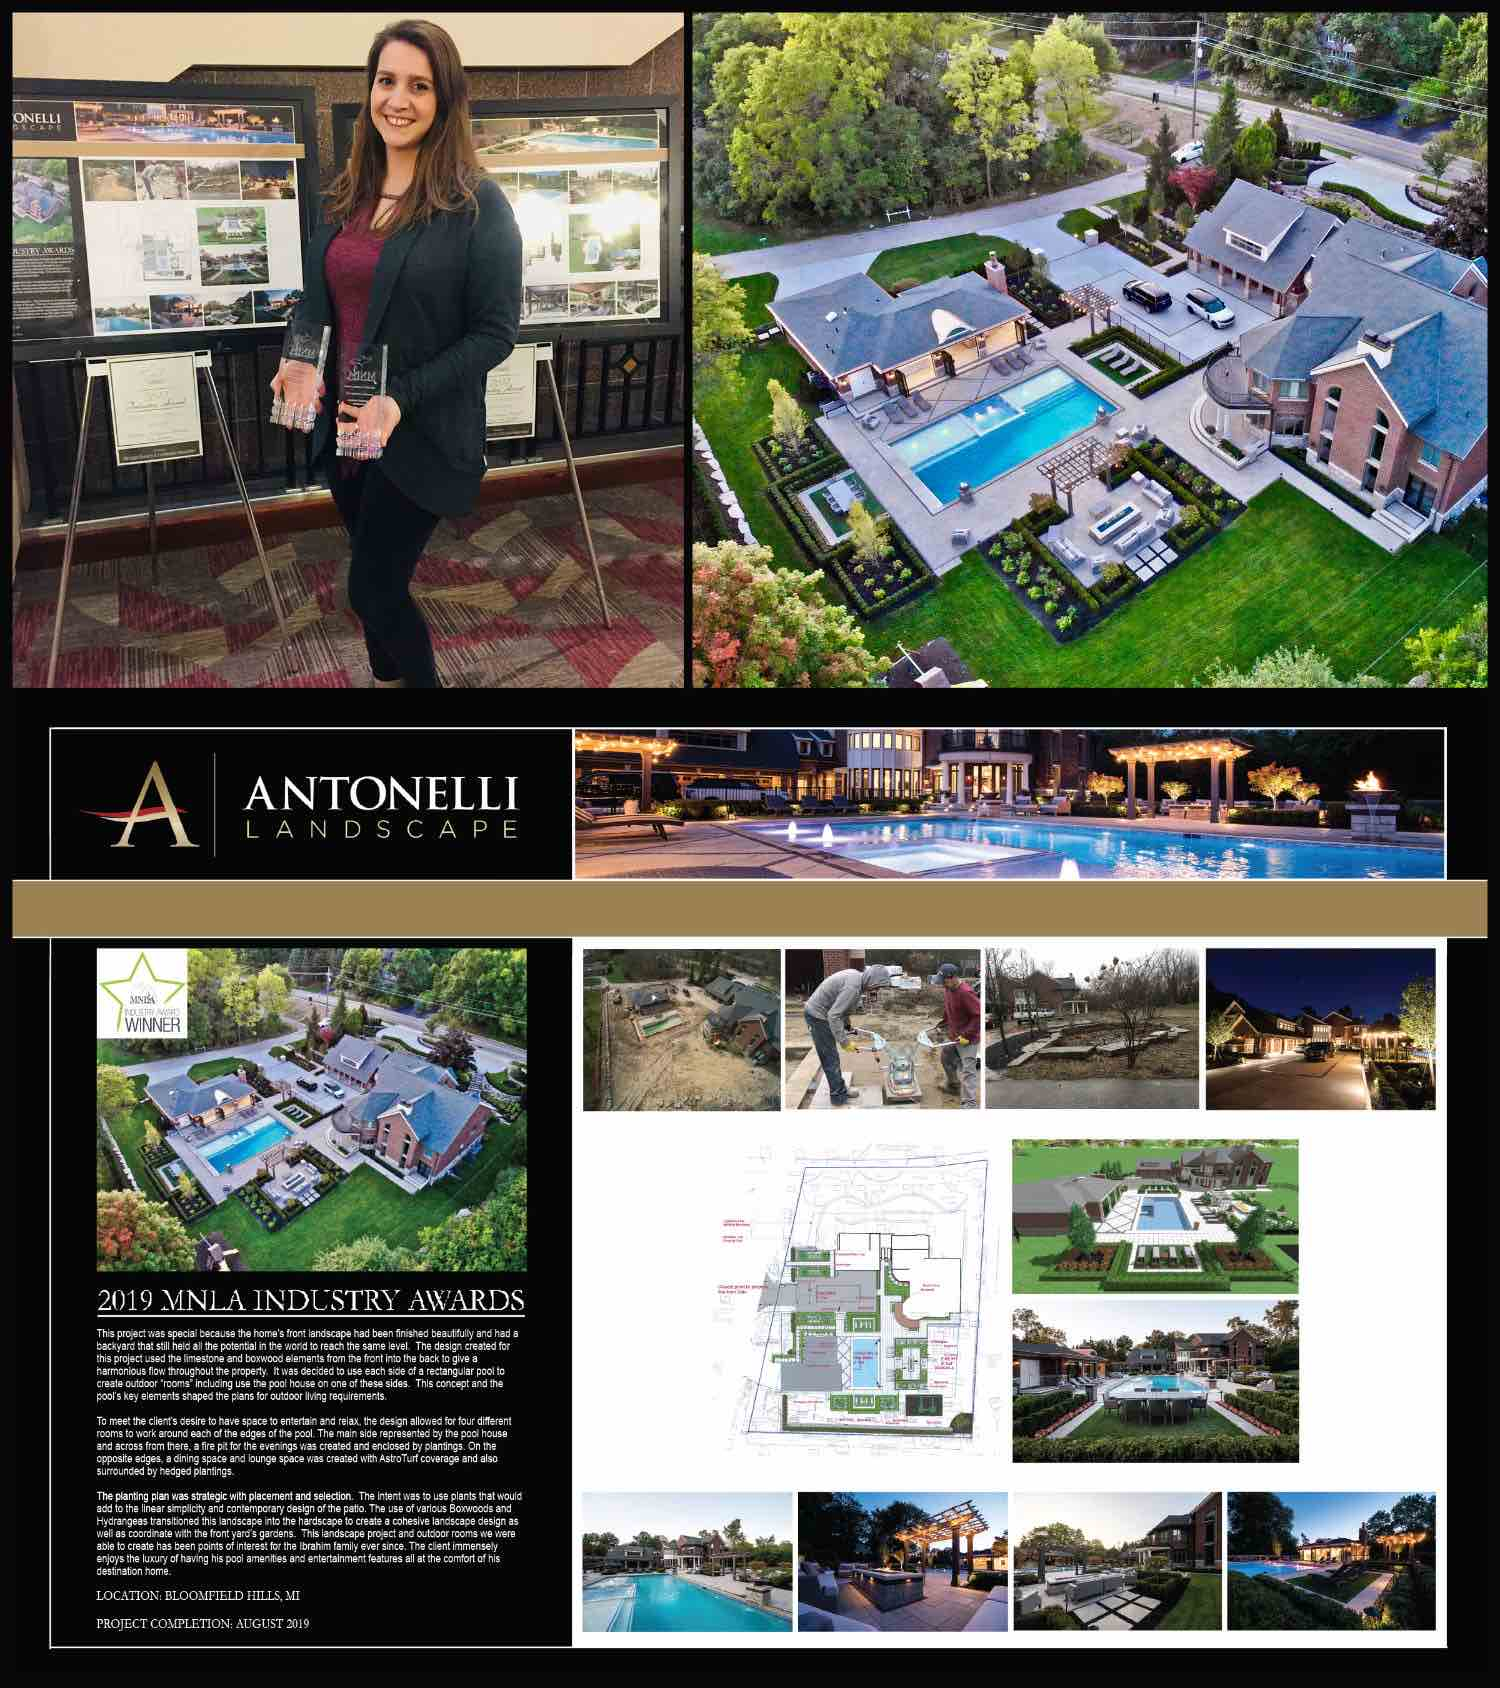 MNLA 2019 Industry Award _ Residential Landscape Design & Installation _ _Destination Dream Home_ - Bloomfield Hills